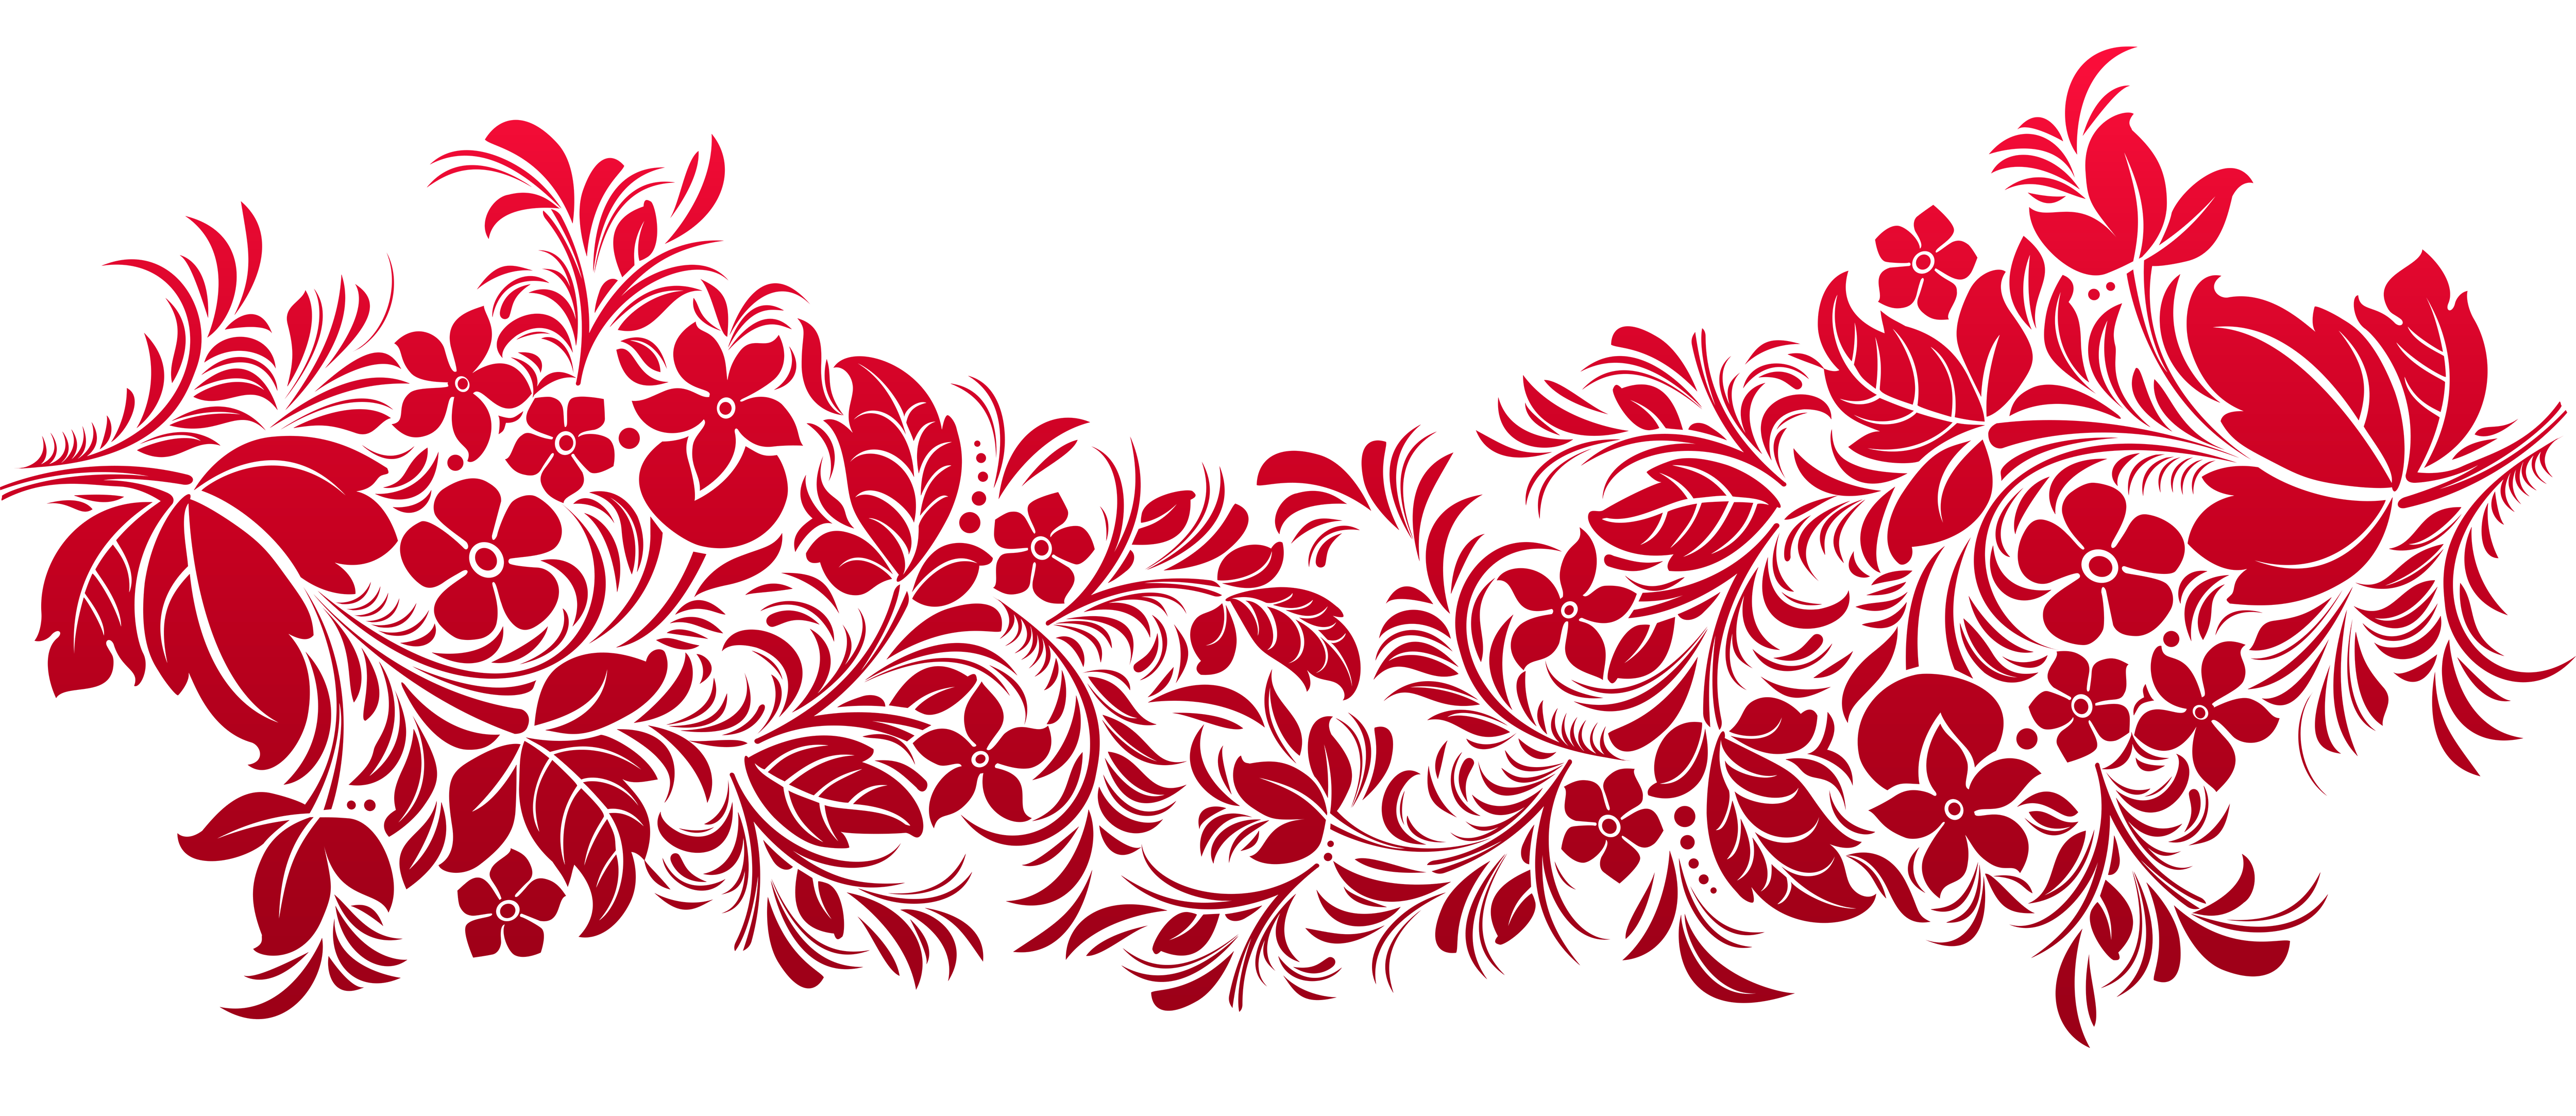 Transparent decoration art png. Red clipart gallery yopriceville